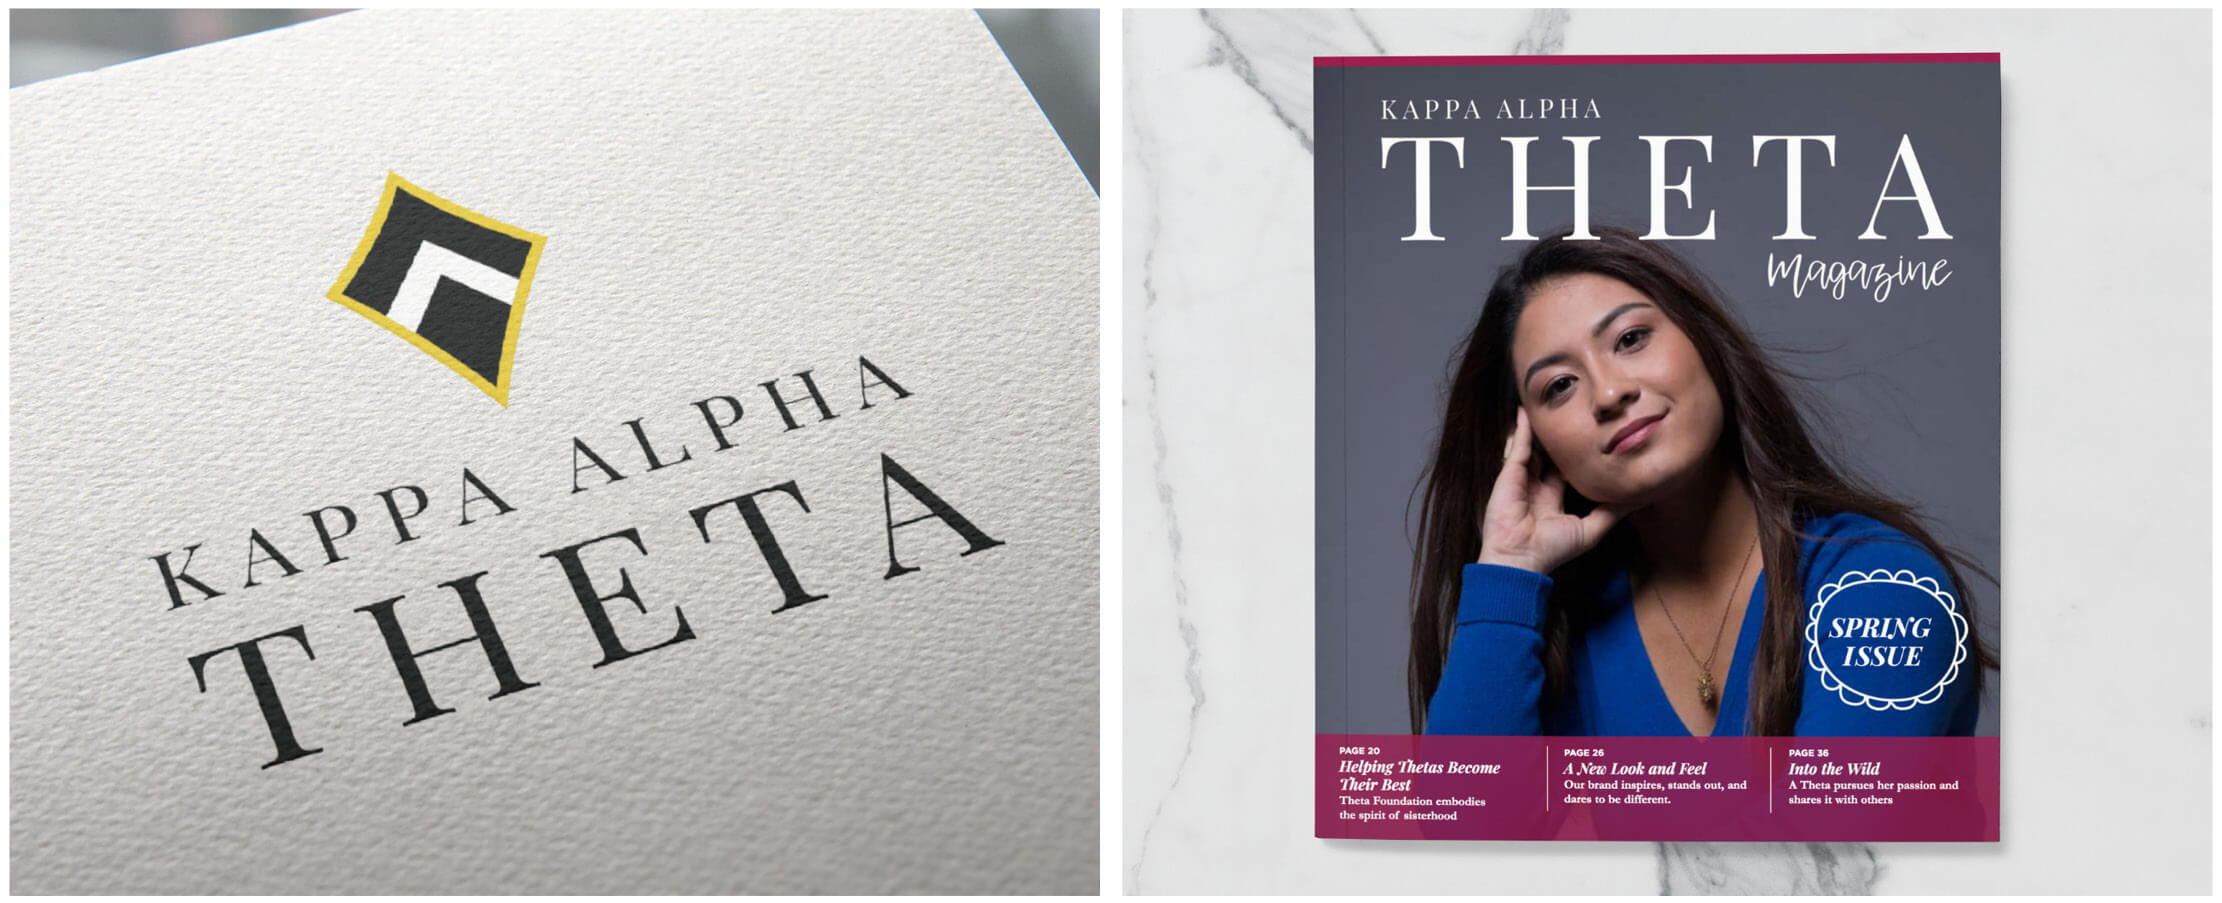 fa274d31 Once the new logo and brand elements were established, we worked with Theta  to apply this brand to marketing materials such as the member magazine and  more.